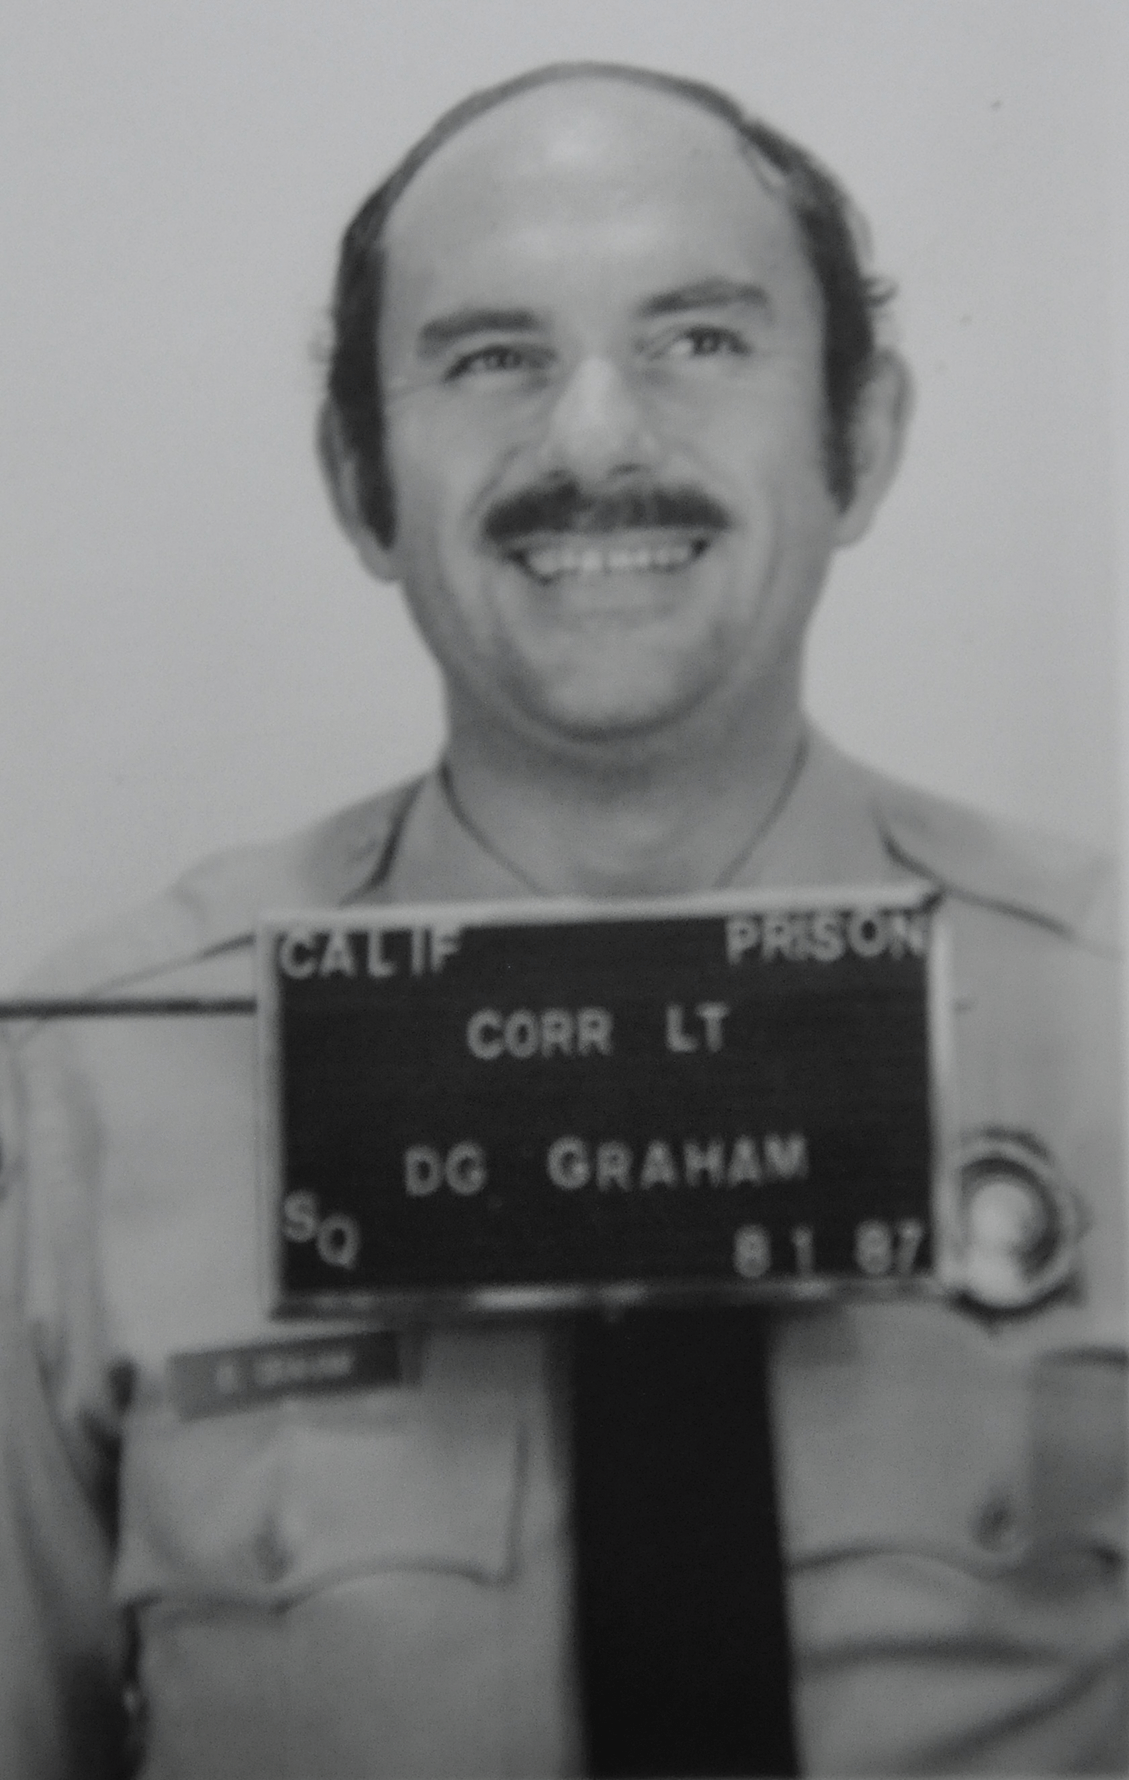 Lt. Donald Graham